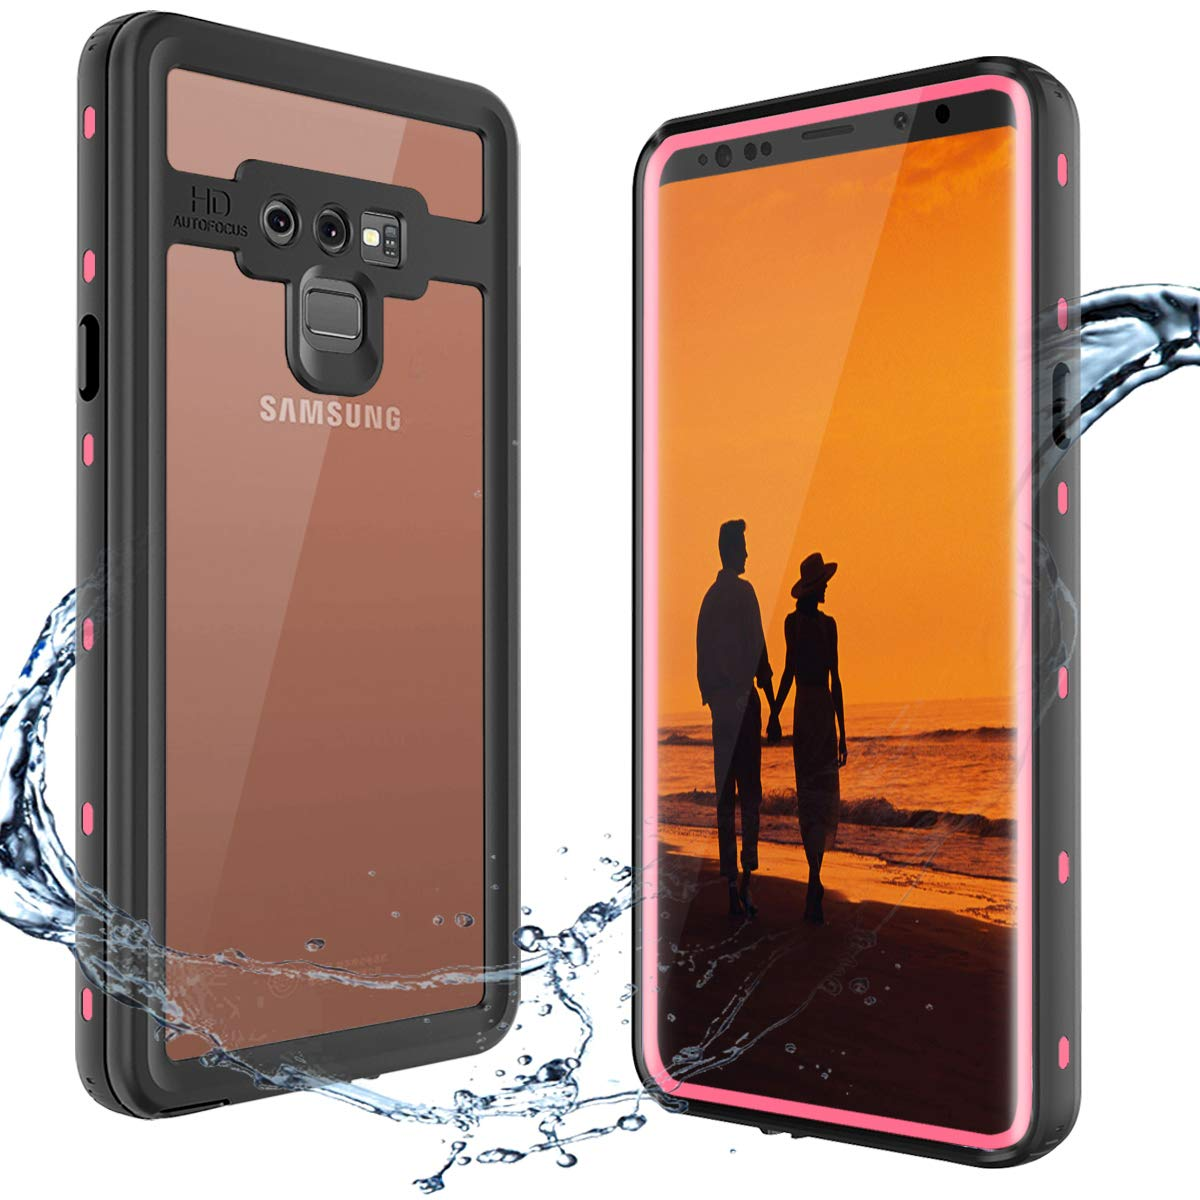 XBK Samsung Note 9 Case, Waterproof Shockproof Snowproof Cover Case with Built-in Screen Protector, Full Body Protect Clear Case for Samsung Note 9 (6.4